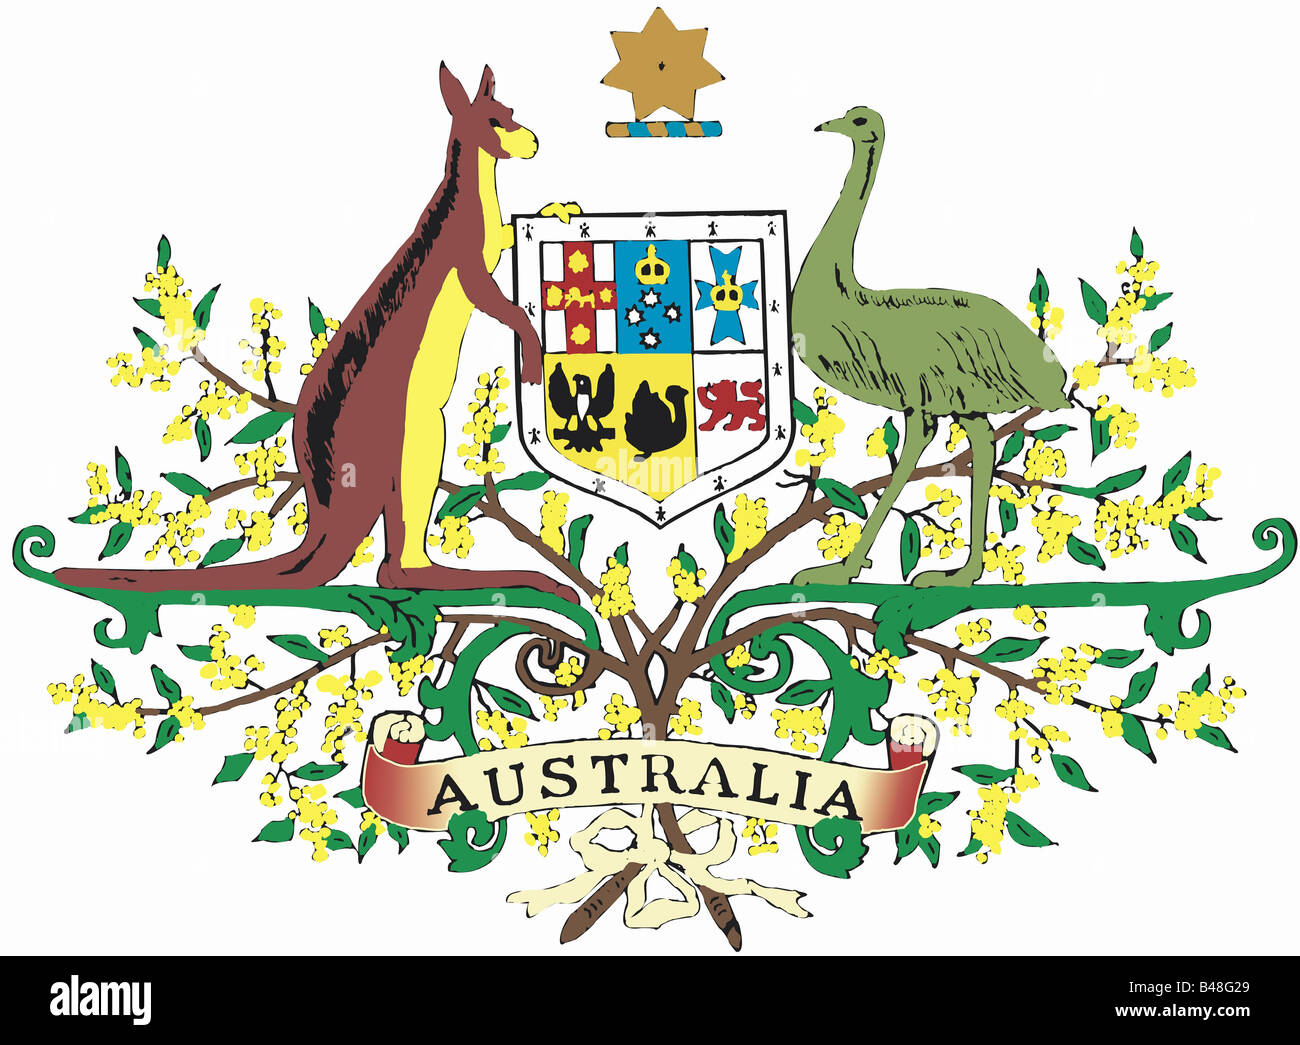 Coat Of Arms Australia Stock Photos Coat Of Arms Australia Stock